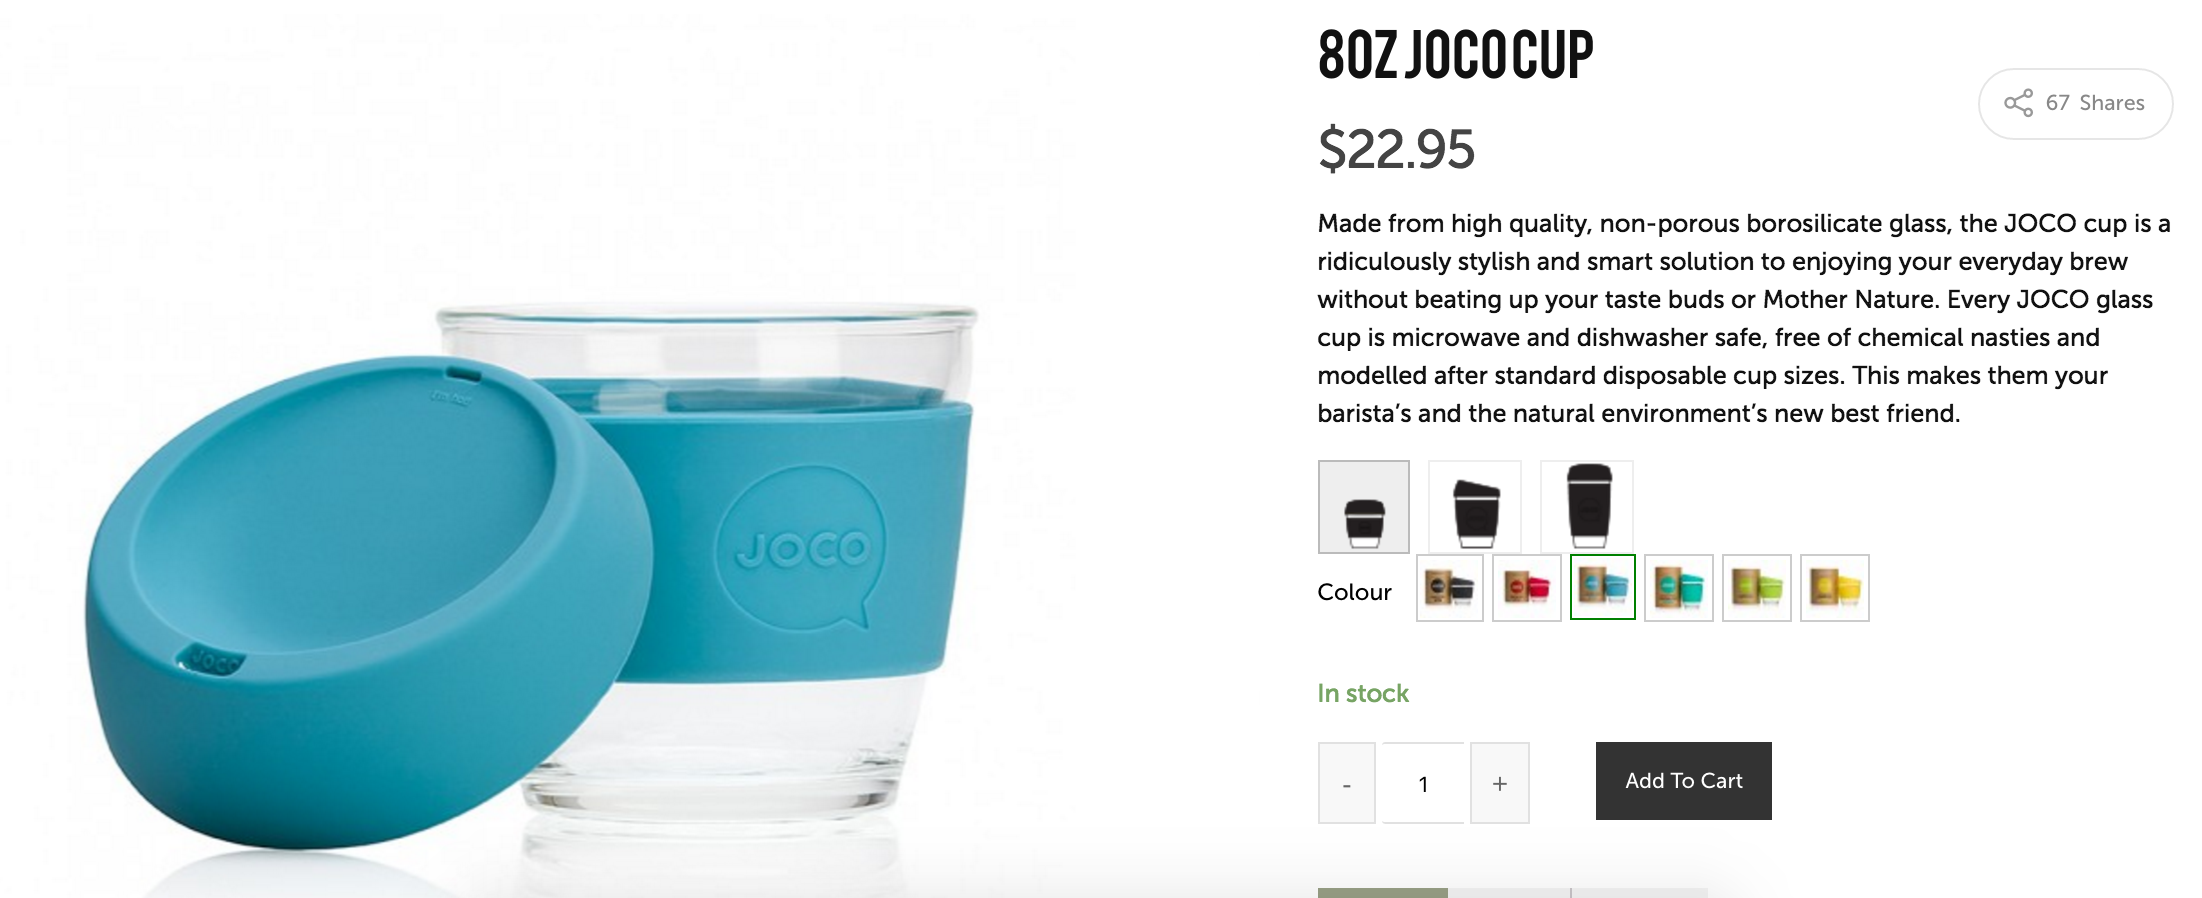 How the swatches look in the wild, in this case being used to sell JOCOs resusable glass coffee cups.